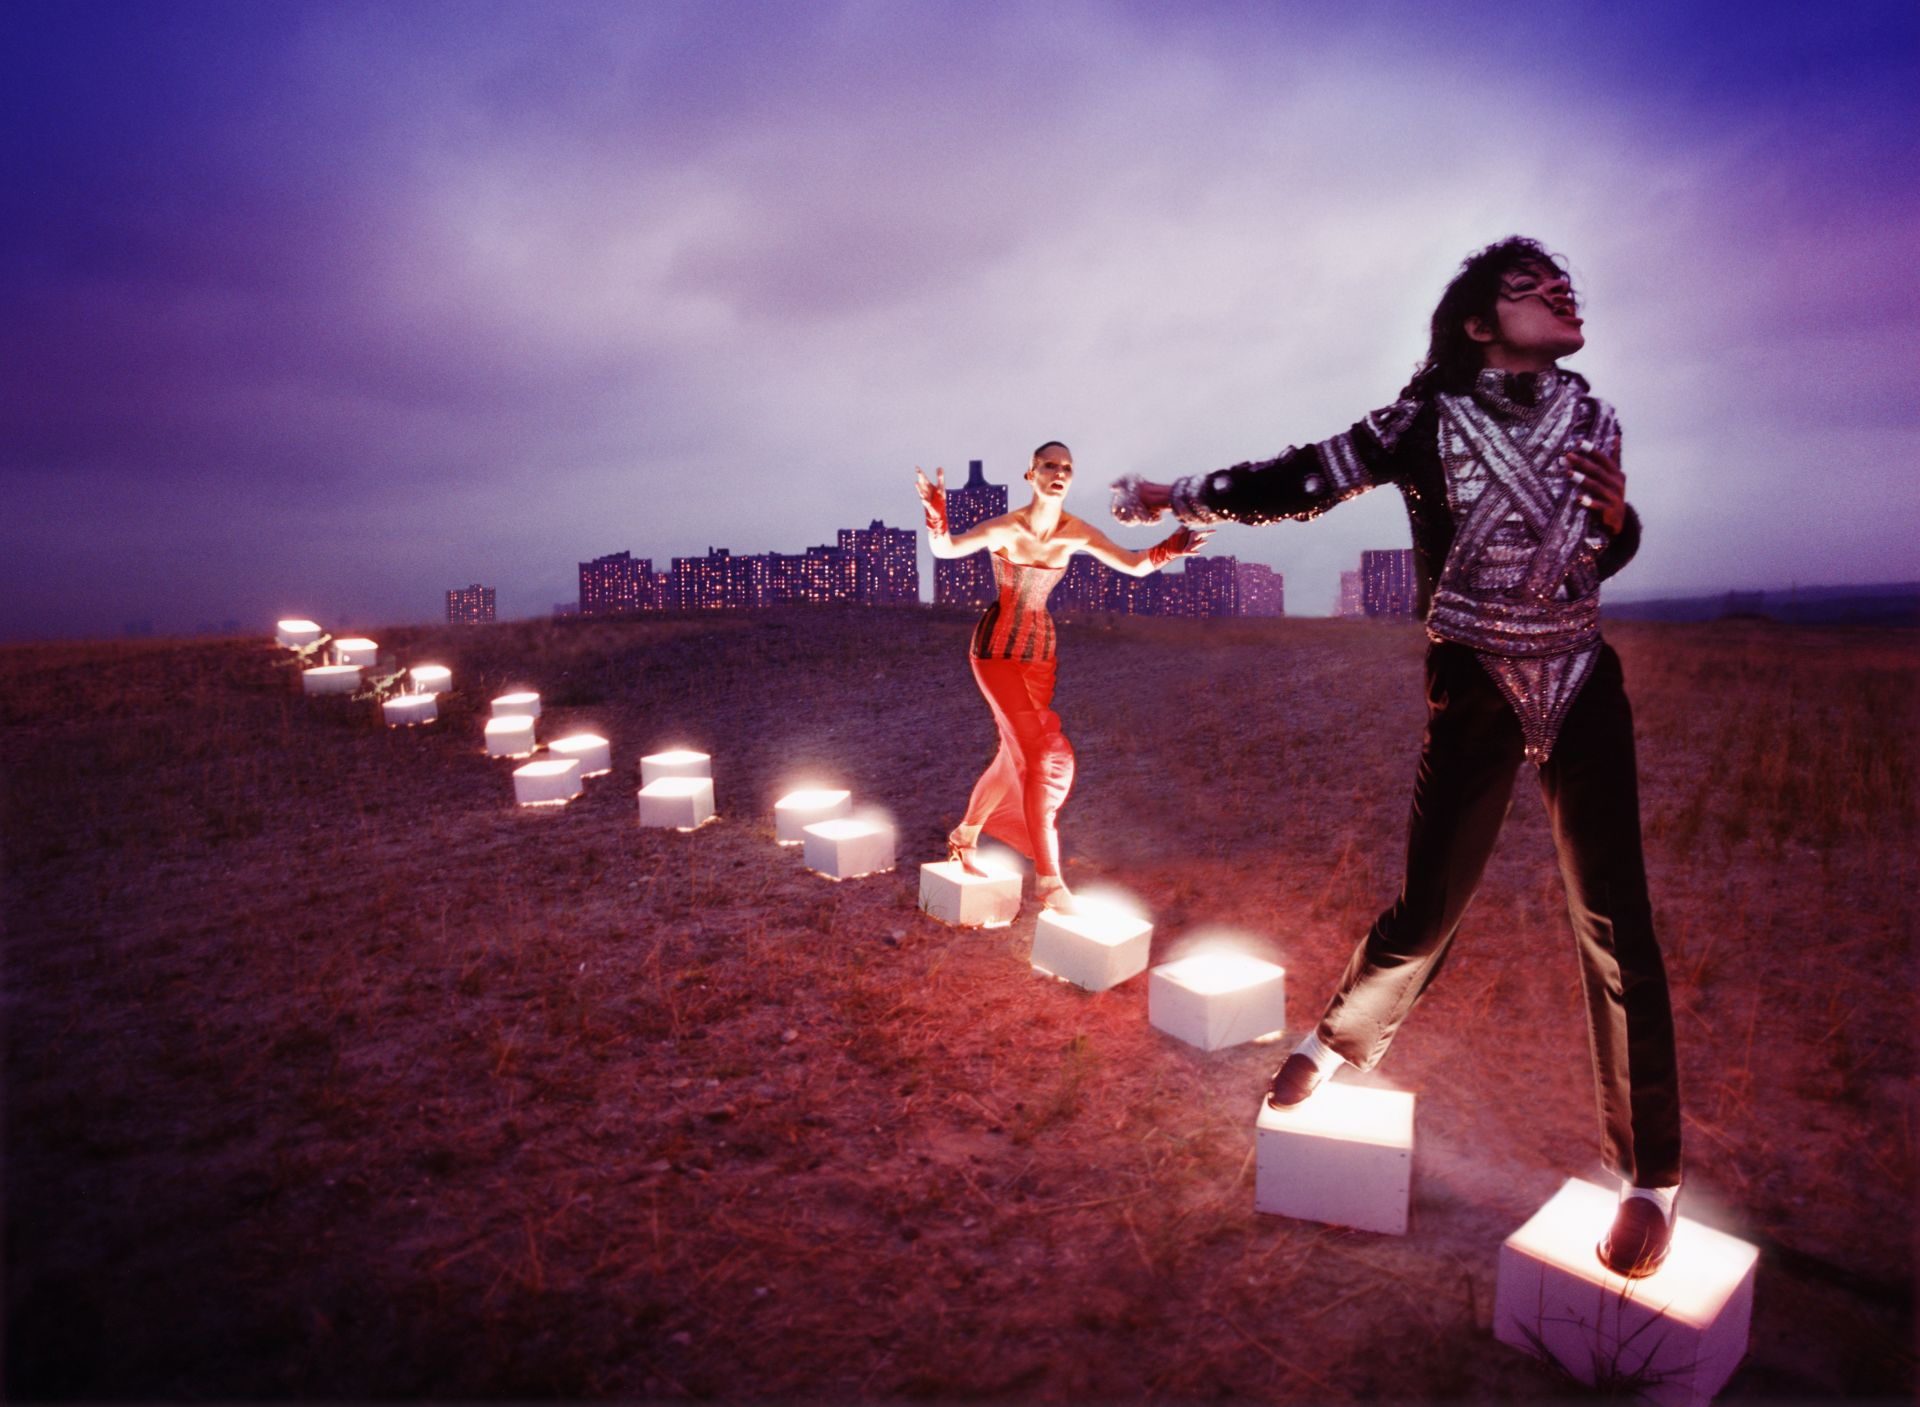 Abb.: David LaChapelle, An Illuminating Path, 1998, Courtesy of the Artist © David LaChapelle